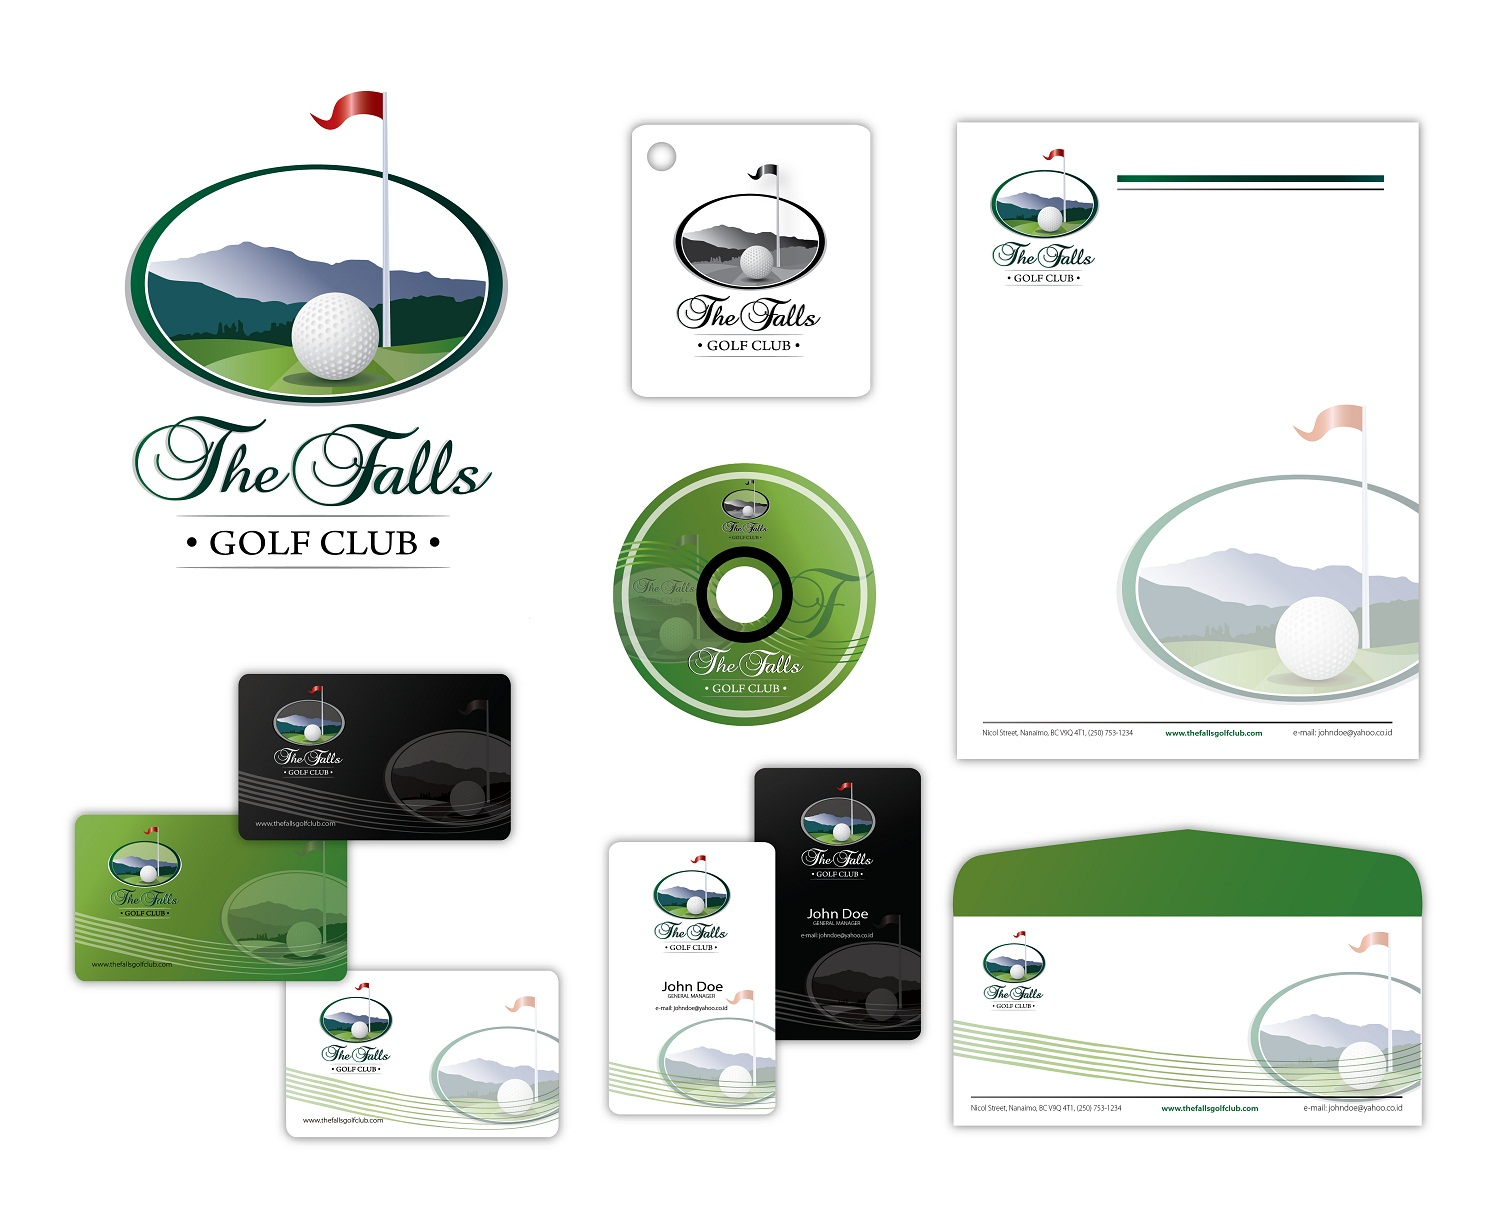 Logo Design by kowreck - Entry No. 11 in the Logo Design Contest The Falls Golf Club Logo Design.